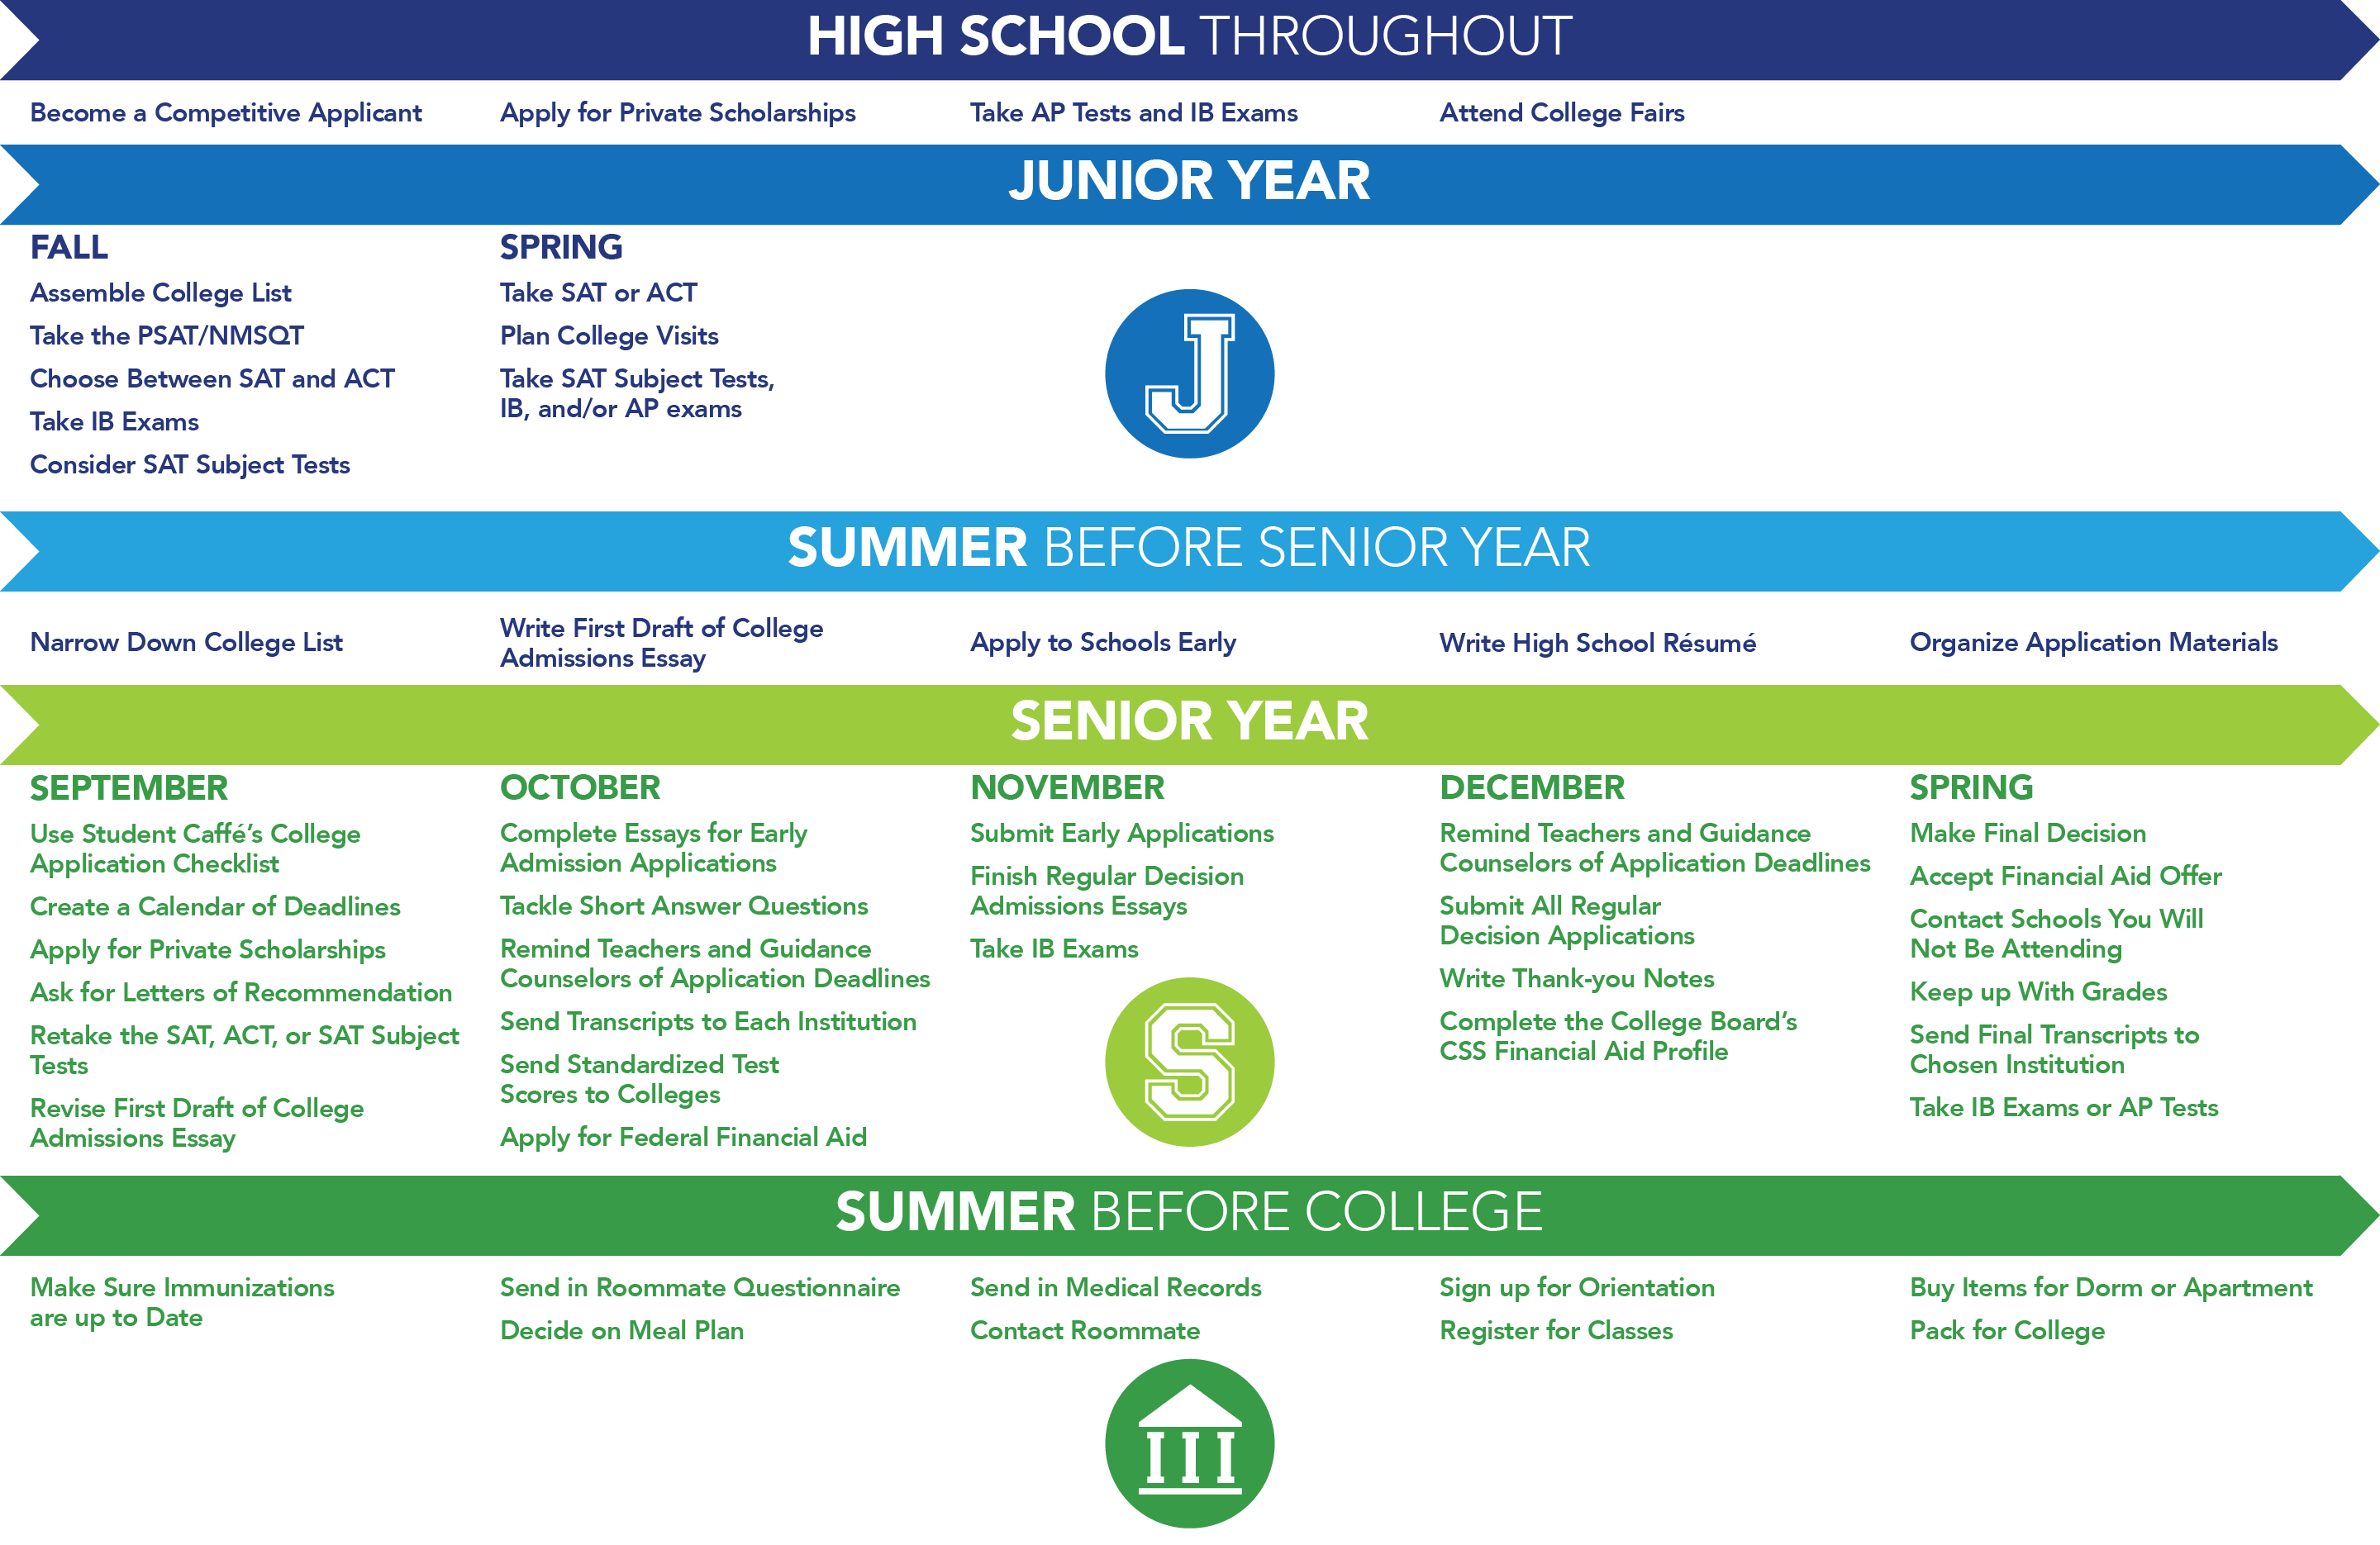 Throughout high school: Become a competitive applicant, apply for private scholarships, take AP and IB exams, attend college fairs. Junior year-Fall: Assemble college list, take the PSAT/NMSQT, choose between the SAT and ACT, take IB exams, consider SAT subject tests. Junior year-Spring: Take the SAT or ACT; plan college visits; take SAT subject tests, IB, and/or AP exams. Summer before senior year: Narrow down college list, write first draft of college essay, apply to schools early, write high school resume, organize application materials. Senior year-September: Use Student Caffe's college application checklist; create a calendar of deadlines; apply for private scholarships; ask for recommendation letters; retake the SAT, ACT, or SAT subject tests; revise first draft of college admissions essay. Senior year-October: Complete essays for early admissions applications, tackle short answer questions, remind teachers and guidance counselors of application deadlines, send transcripts to each institution, send standardized test scores to colleges, apply for federal financial aid. Senior year-November: Submit early applications, finish regular decision admissions essays, take IB exams. Senior year-December: Remind teachers and guidance counselors of application deadlines, submit all regular decision applications, write thank-you notes, complete the College Board's CSS financial aid profile. Senior year-spring: Make your final decision, accept your financial aid offer, contact the schools you will not be attending, keep up with your grades, send final transcripts to your chosen institution, take IB exams or AP tests. Summer before college: make sure immunizations are up to date, send in roommate questionnaire, decide on meal plan, send in medical records, contact roommate, sign up for orientation, register for classes, buy items for dorm or apartment, pack for college.